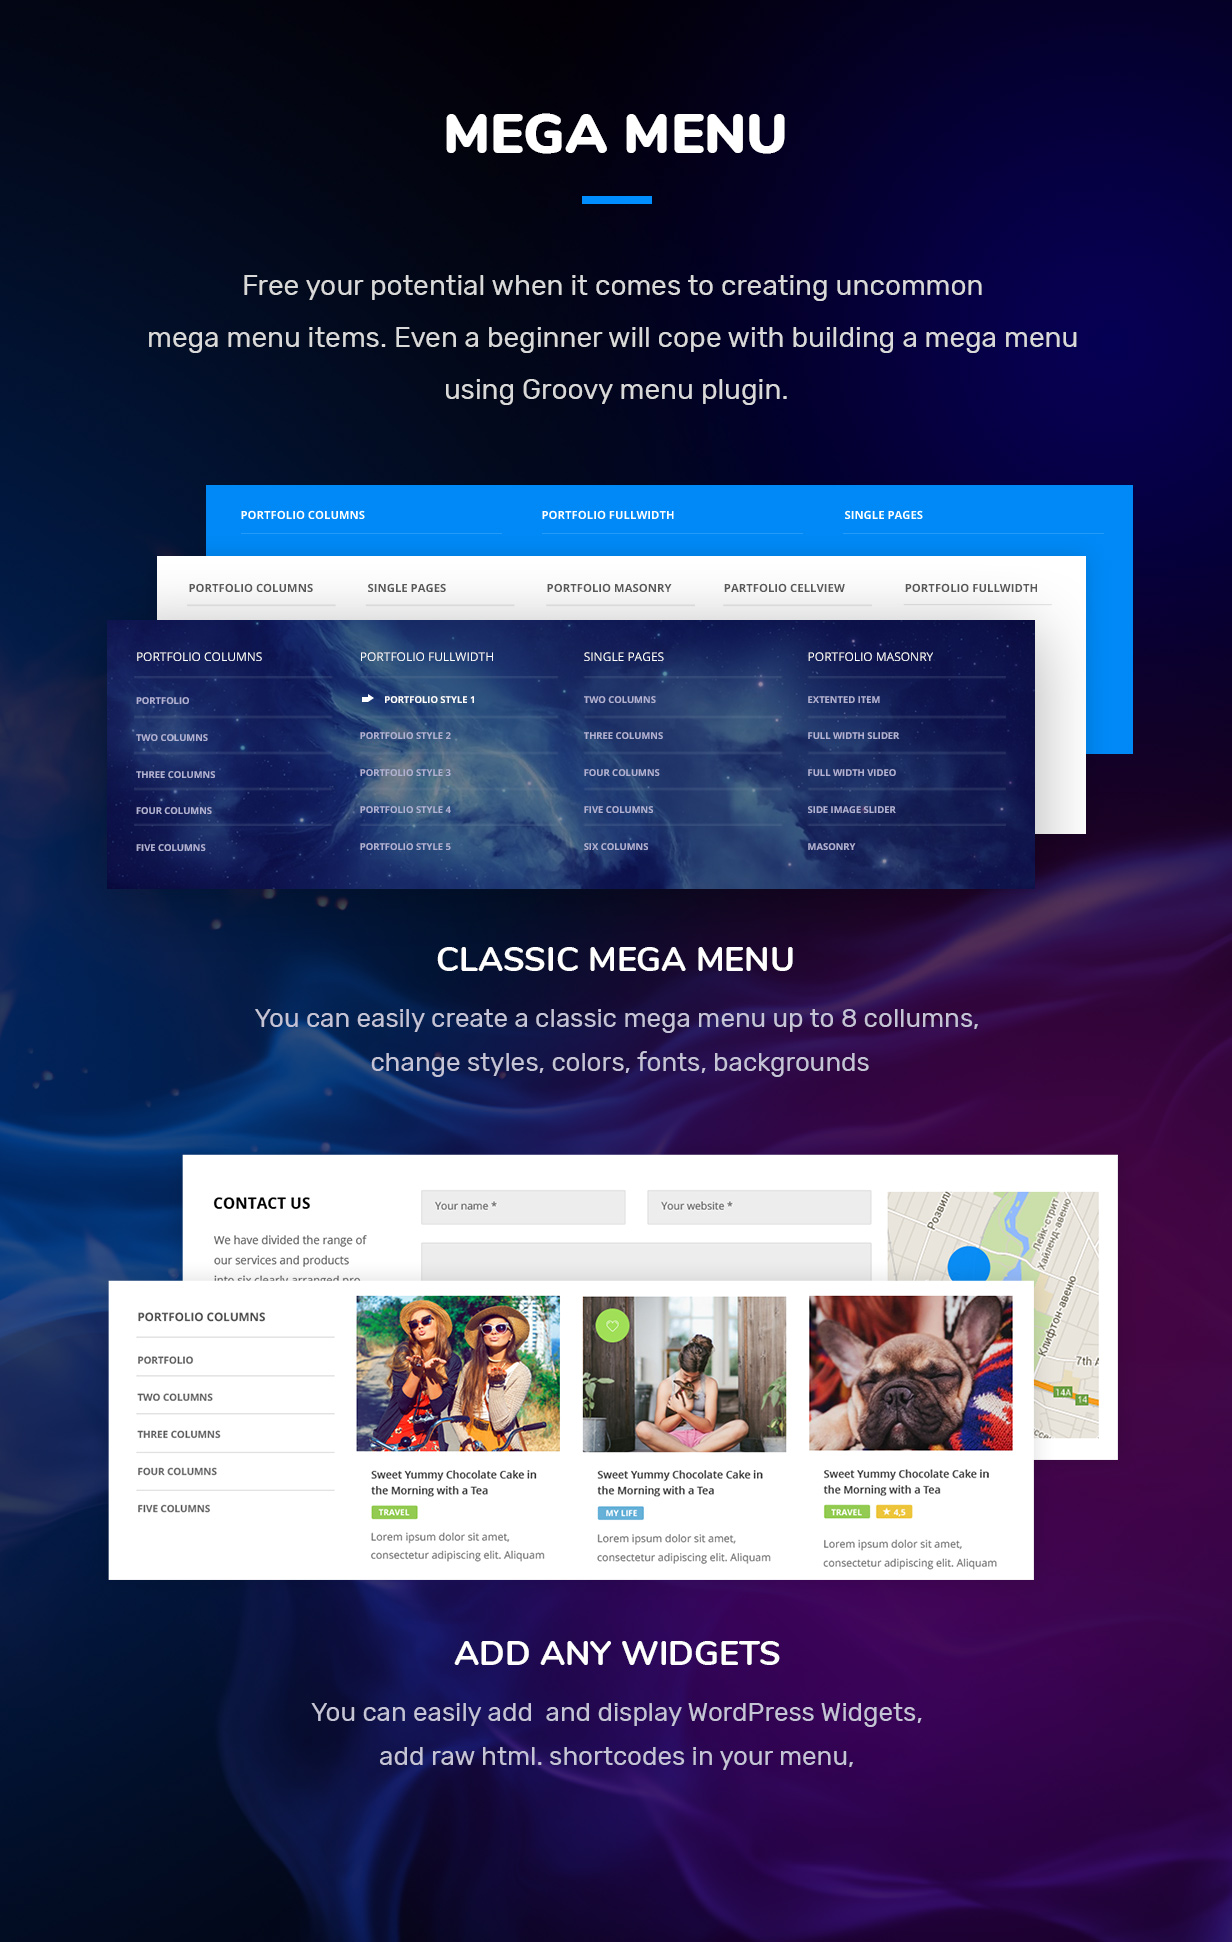 wordpress mega menu plugin widgets, sticky, wpbakkery